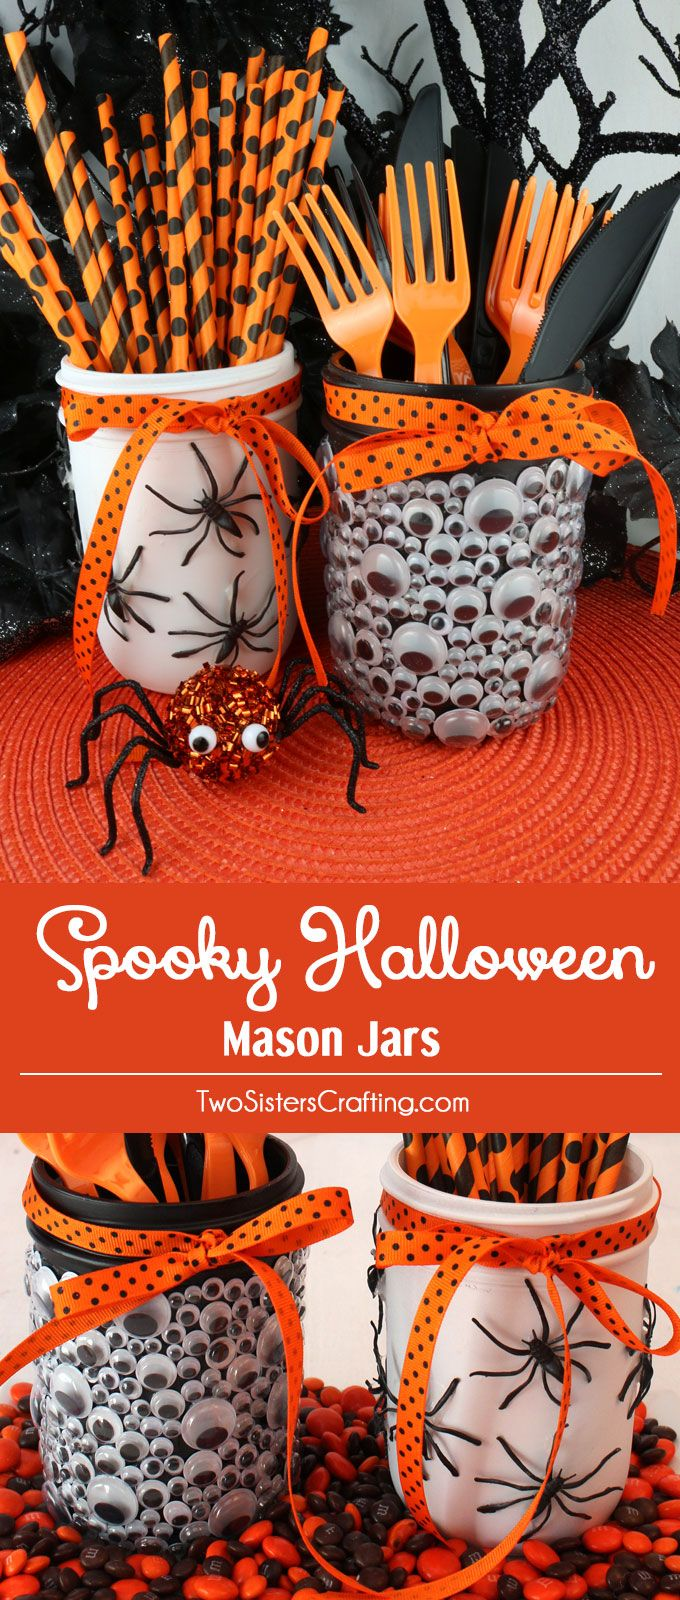 35+ of the Most Spooktacular Halloween Ideas on Pinterest - Halloween Decoration Ideas Pinterest